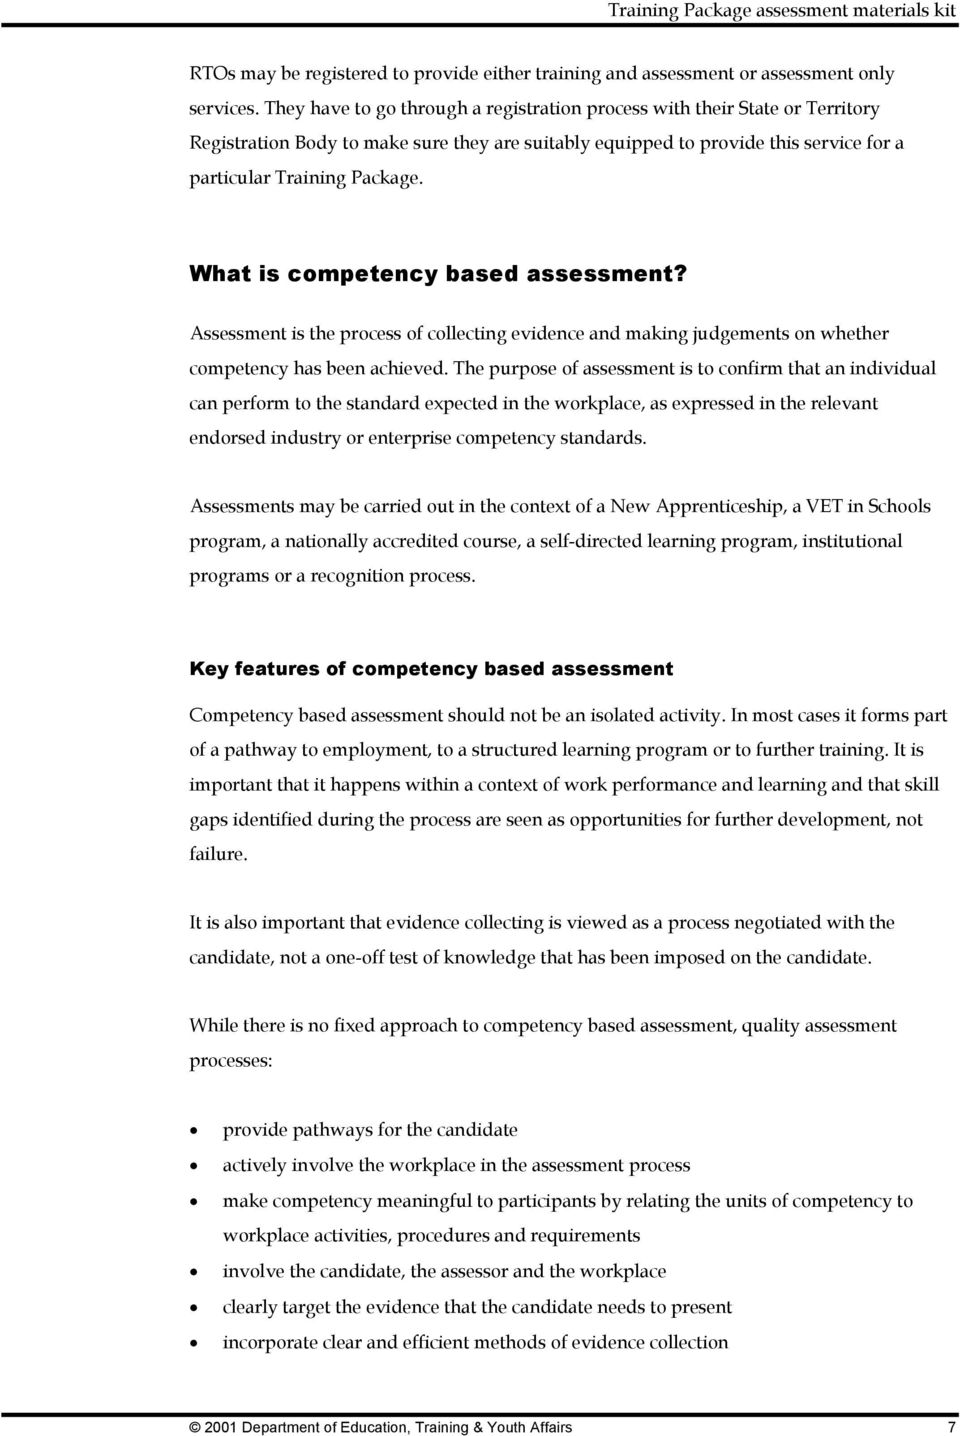 What is competency based assessment? Assessment is the process of collecting evidence and making judgements on whether competency has been achieved.